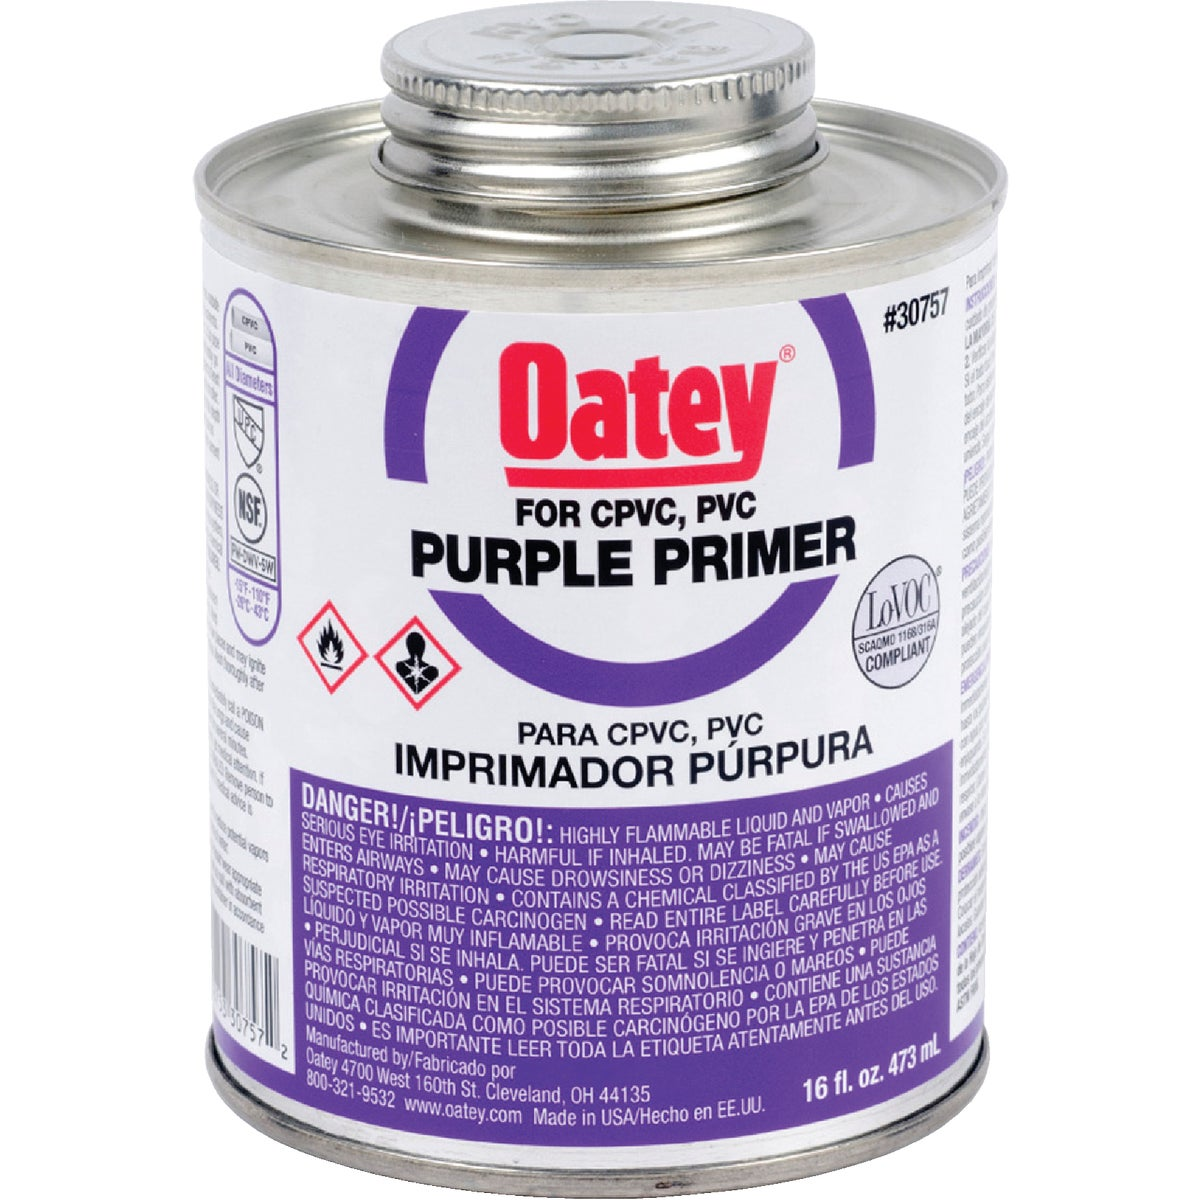 PINT PURPLE PRIMER - 30757 by Oatey Scs